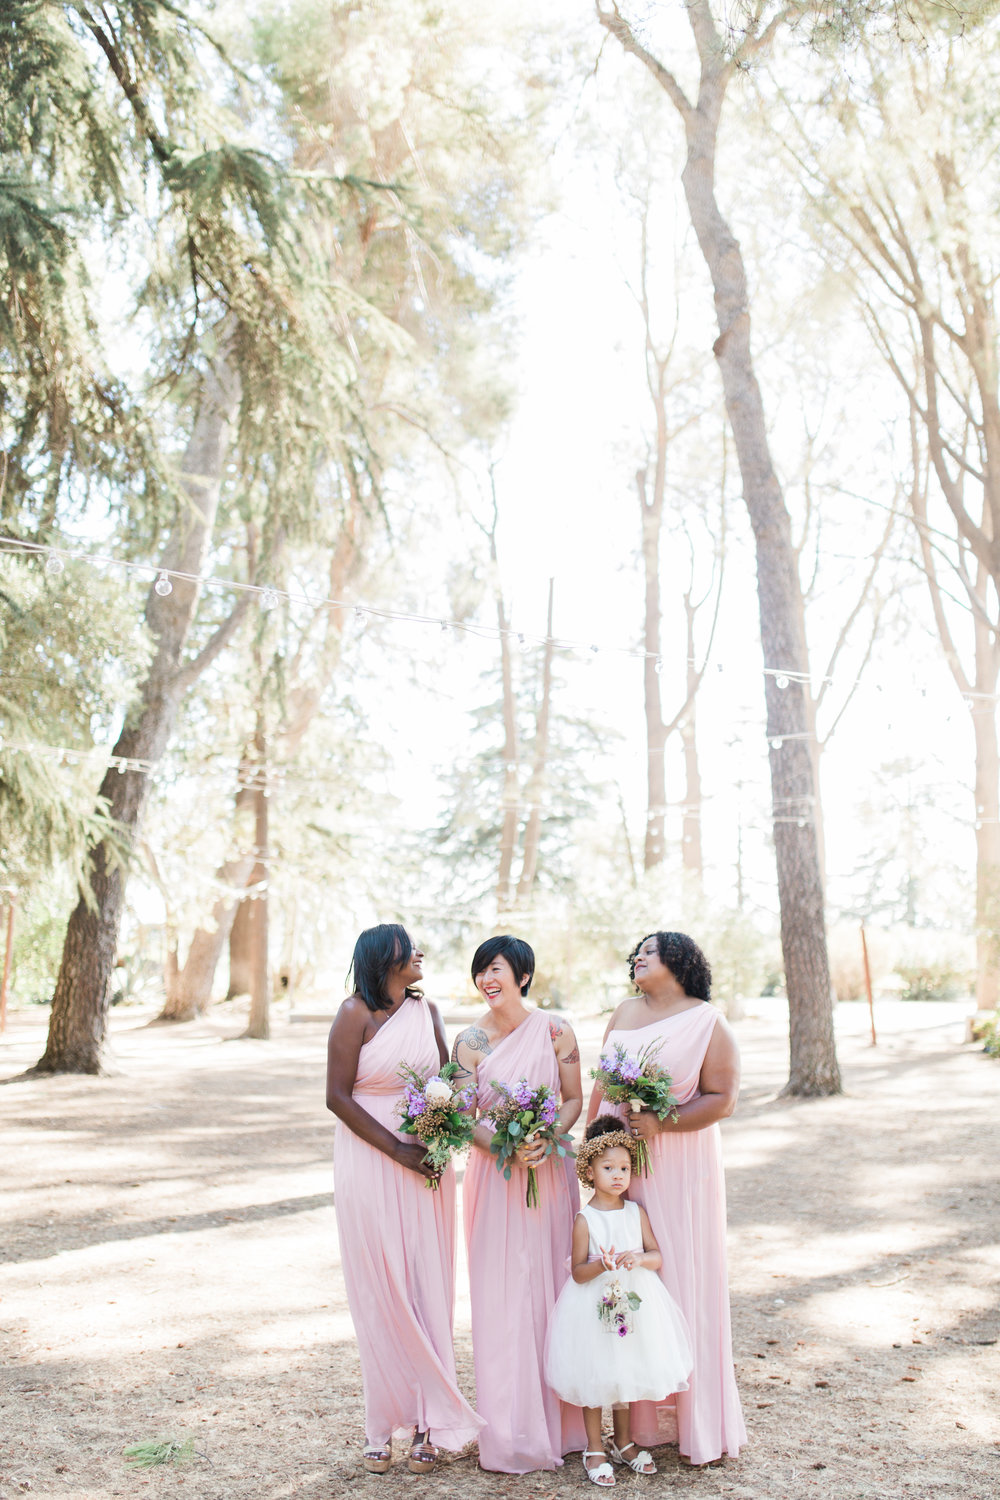 Jenny Quicksall Photography_www.jennyquicksall.com_California Wedding Photographer_Highland Springs Ranch and Inn Resort_Cherry Valley California (22).JPG